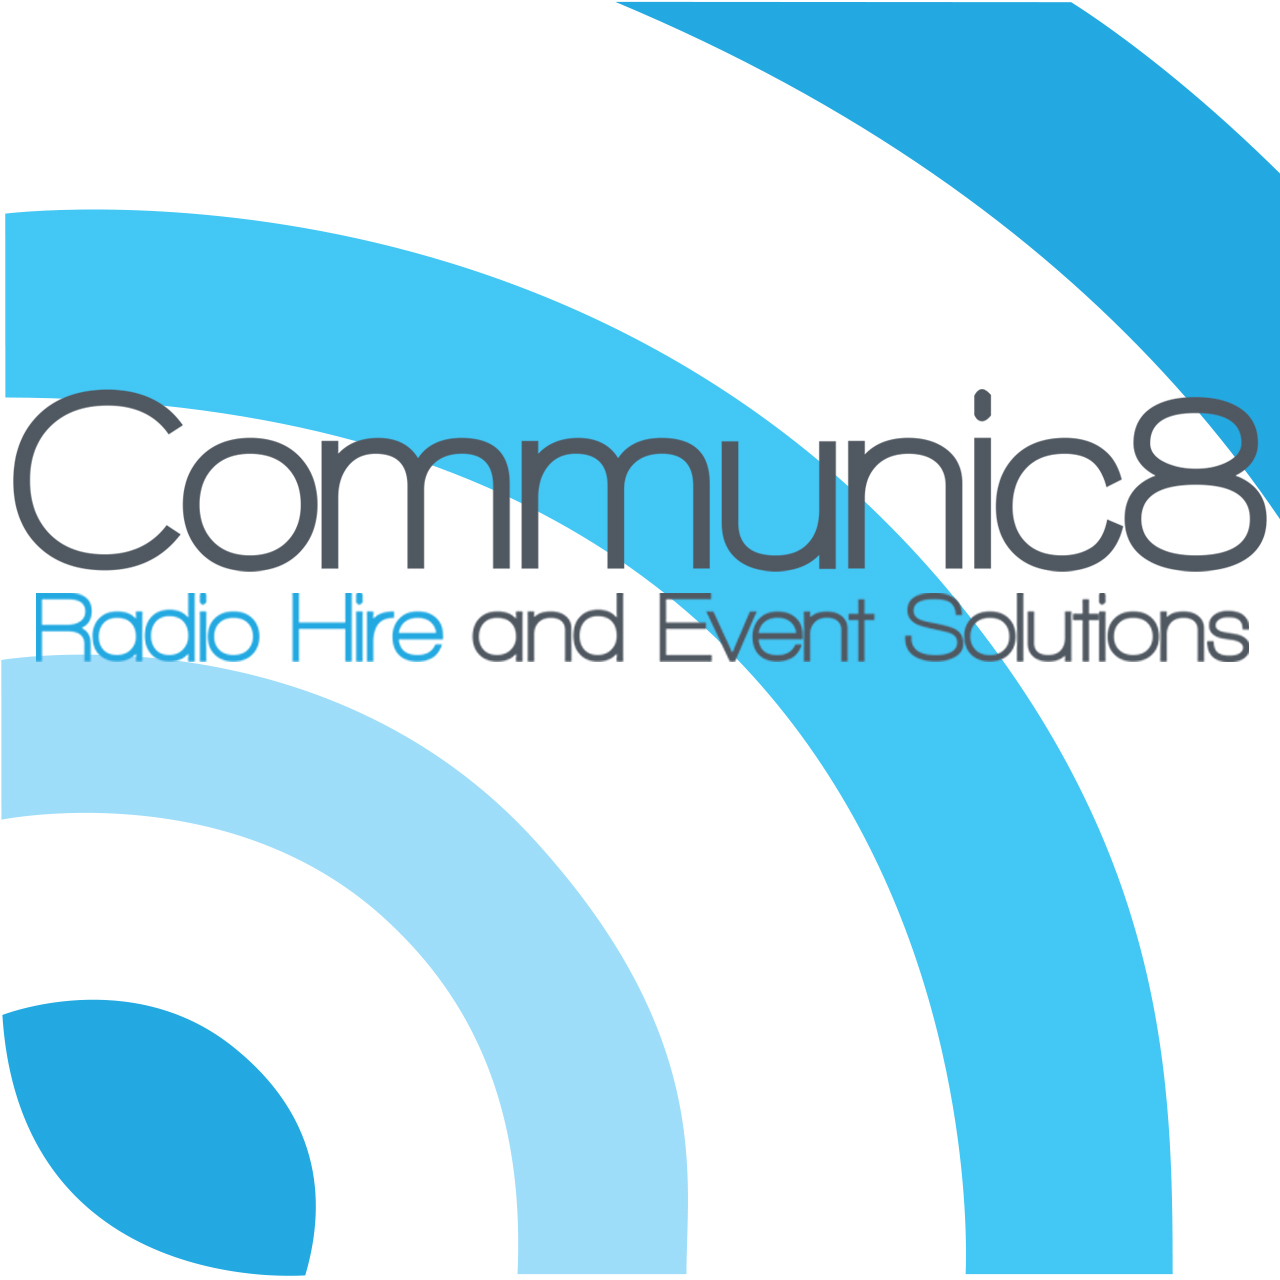 Communic8 Hire - Radio Communications and Audio Visual Hire in South West Wales